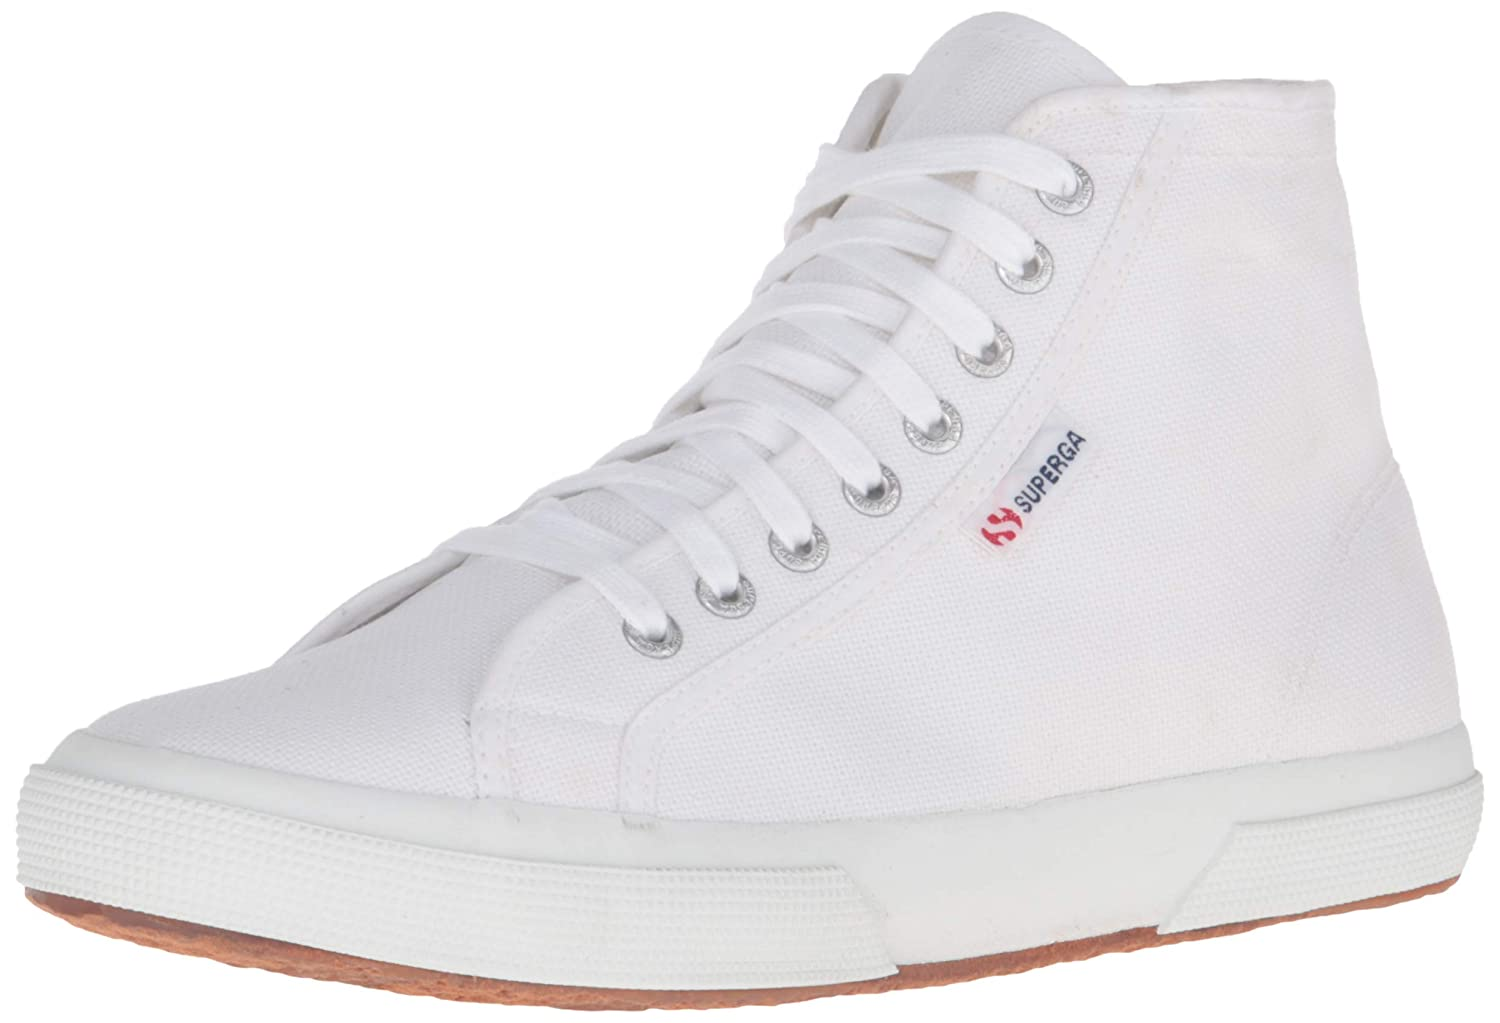 1920s Tennis Clothes | Womens and Men's Outfits Superga Womens 2750 Cotu Classic 1 Sneaker $67.20 AT vintagedancer.com